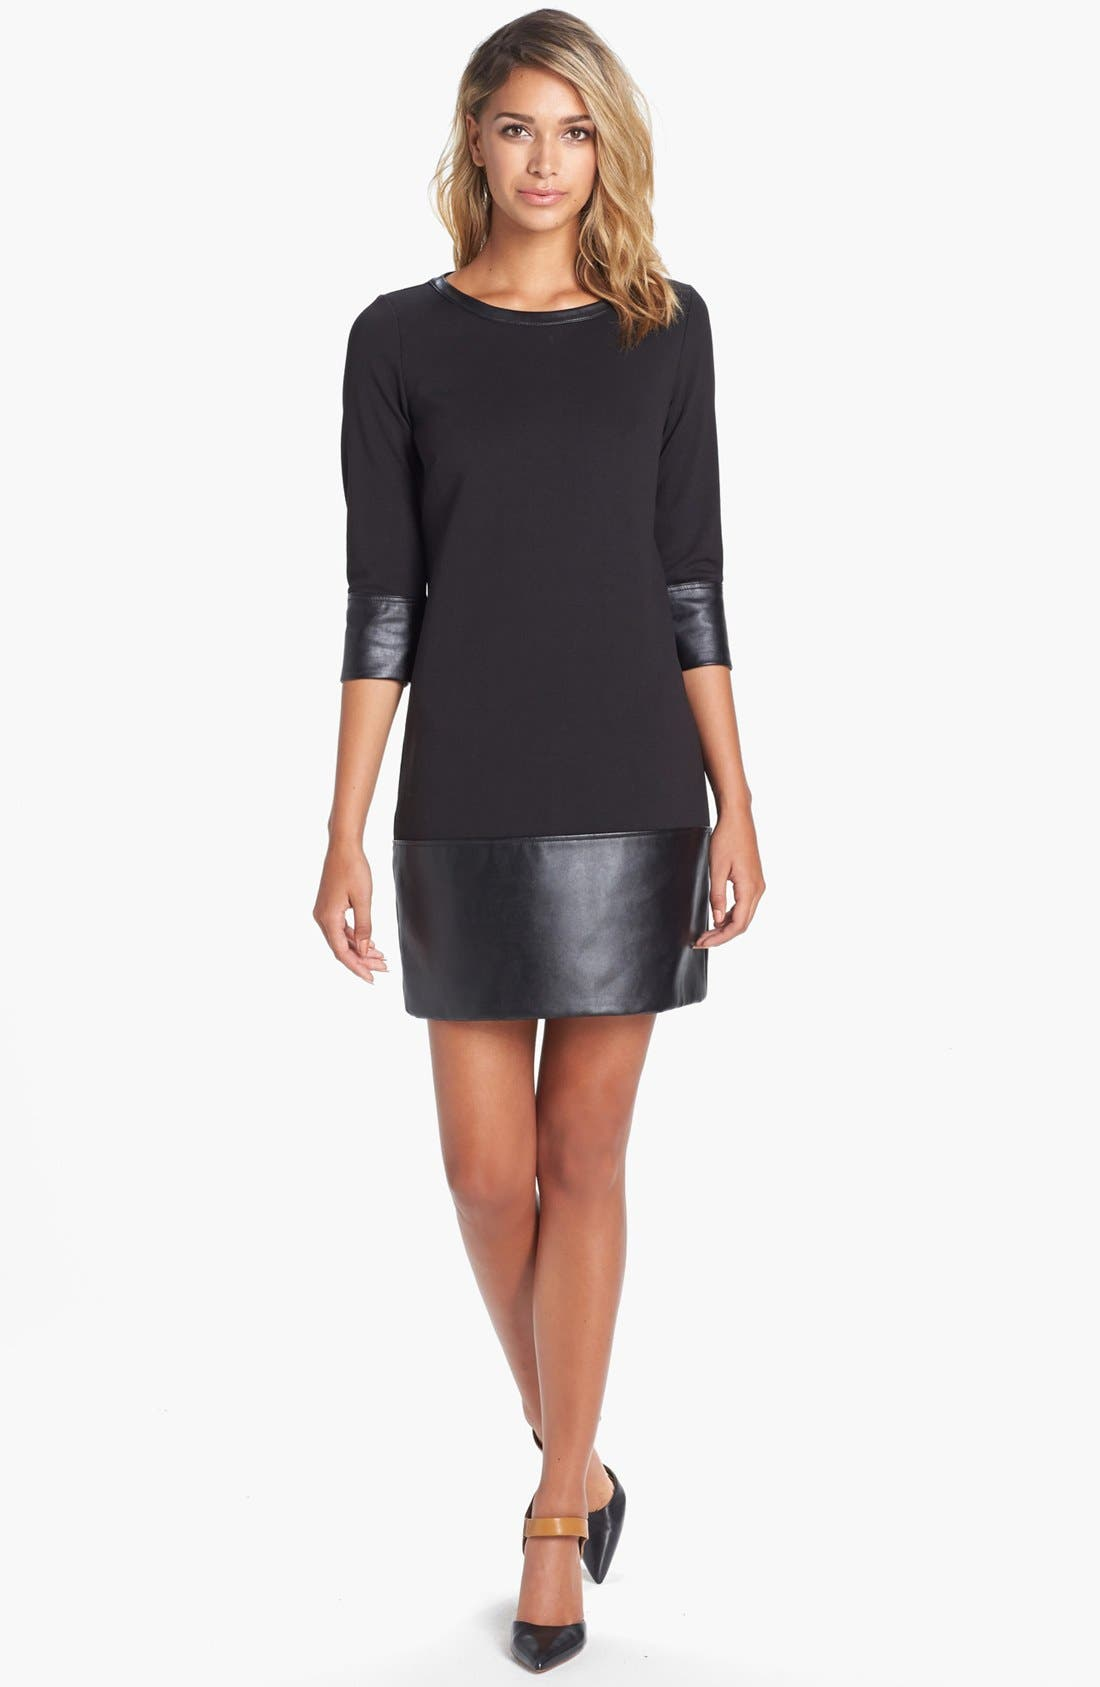 Alternate Image 1 Selected - Laundry by Shelli Segal Knit & Faux Leather Drop Waist Shift Dress